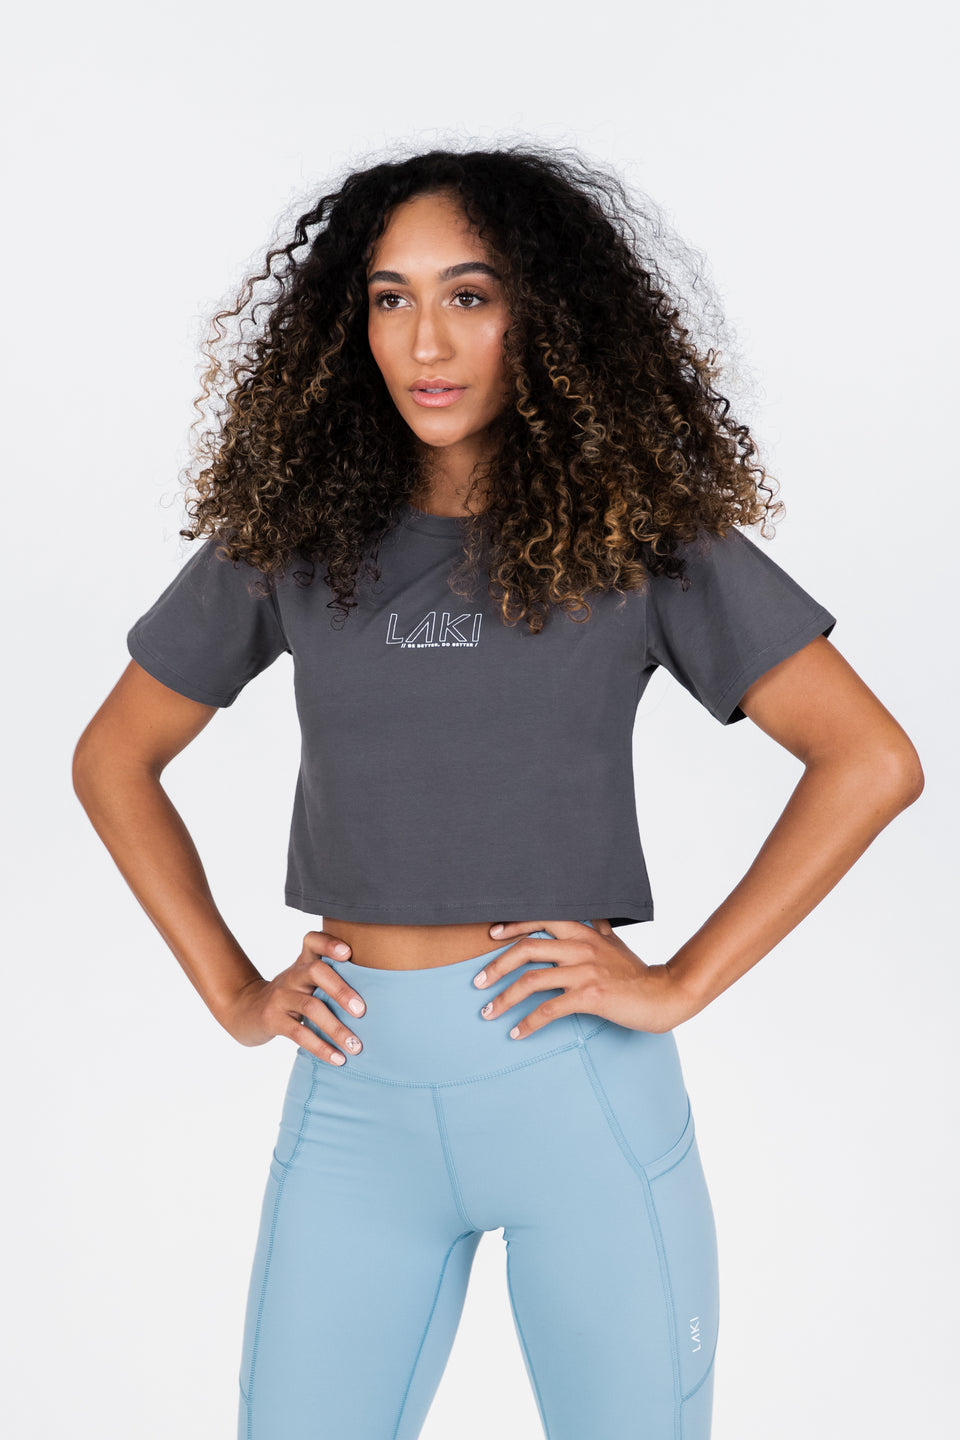 STATEMENT CROP TEE - ASH